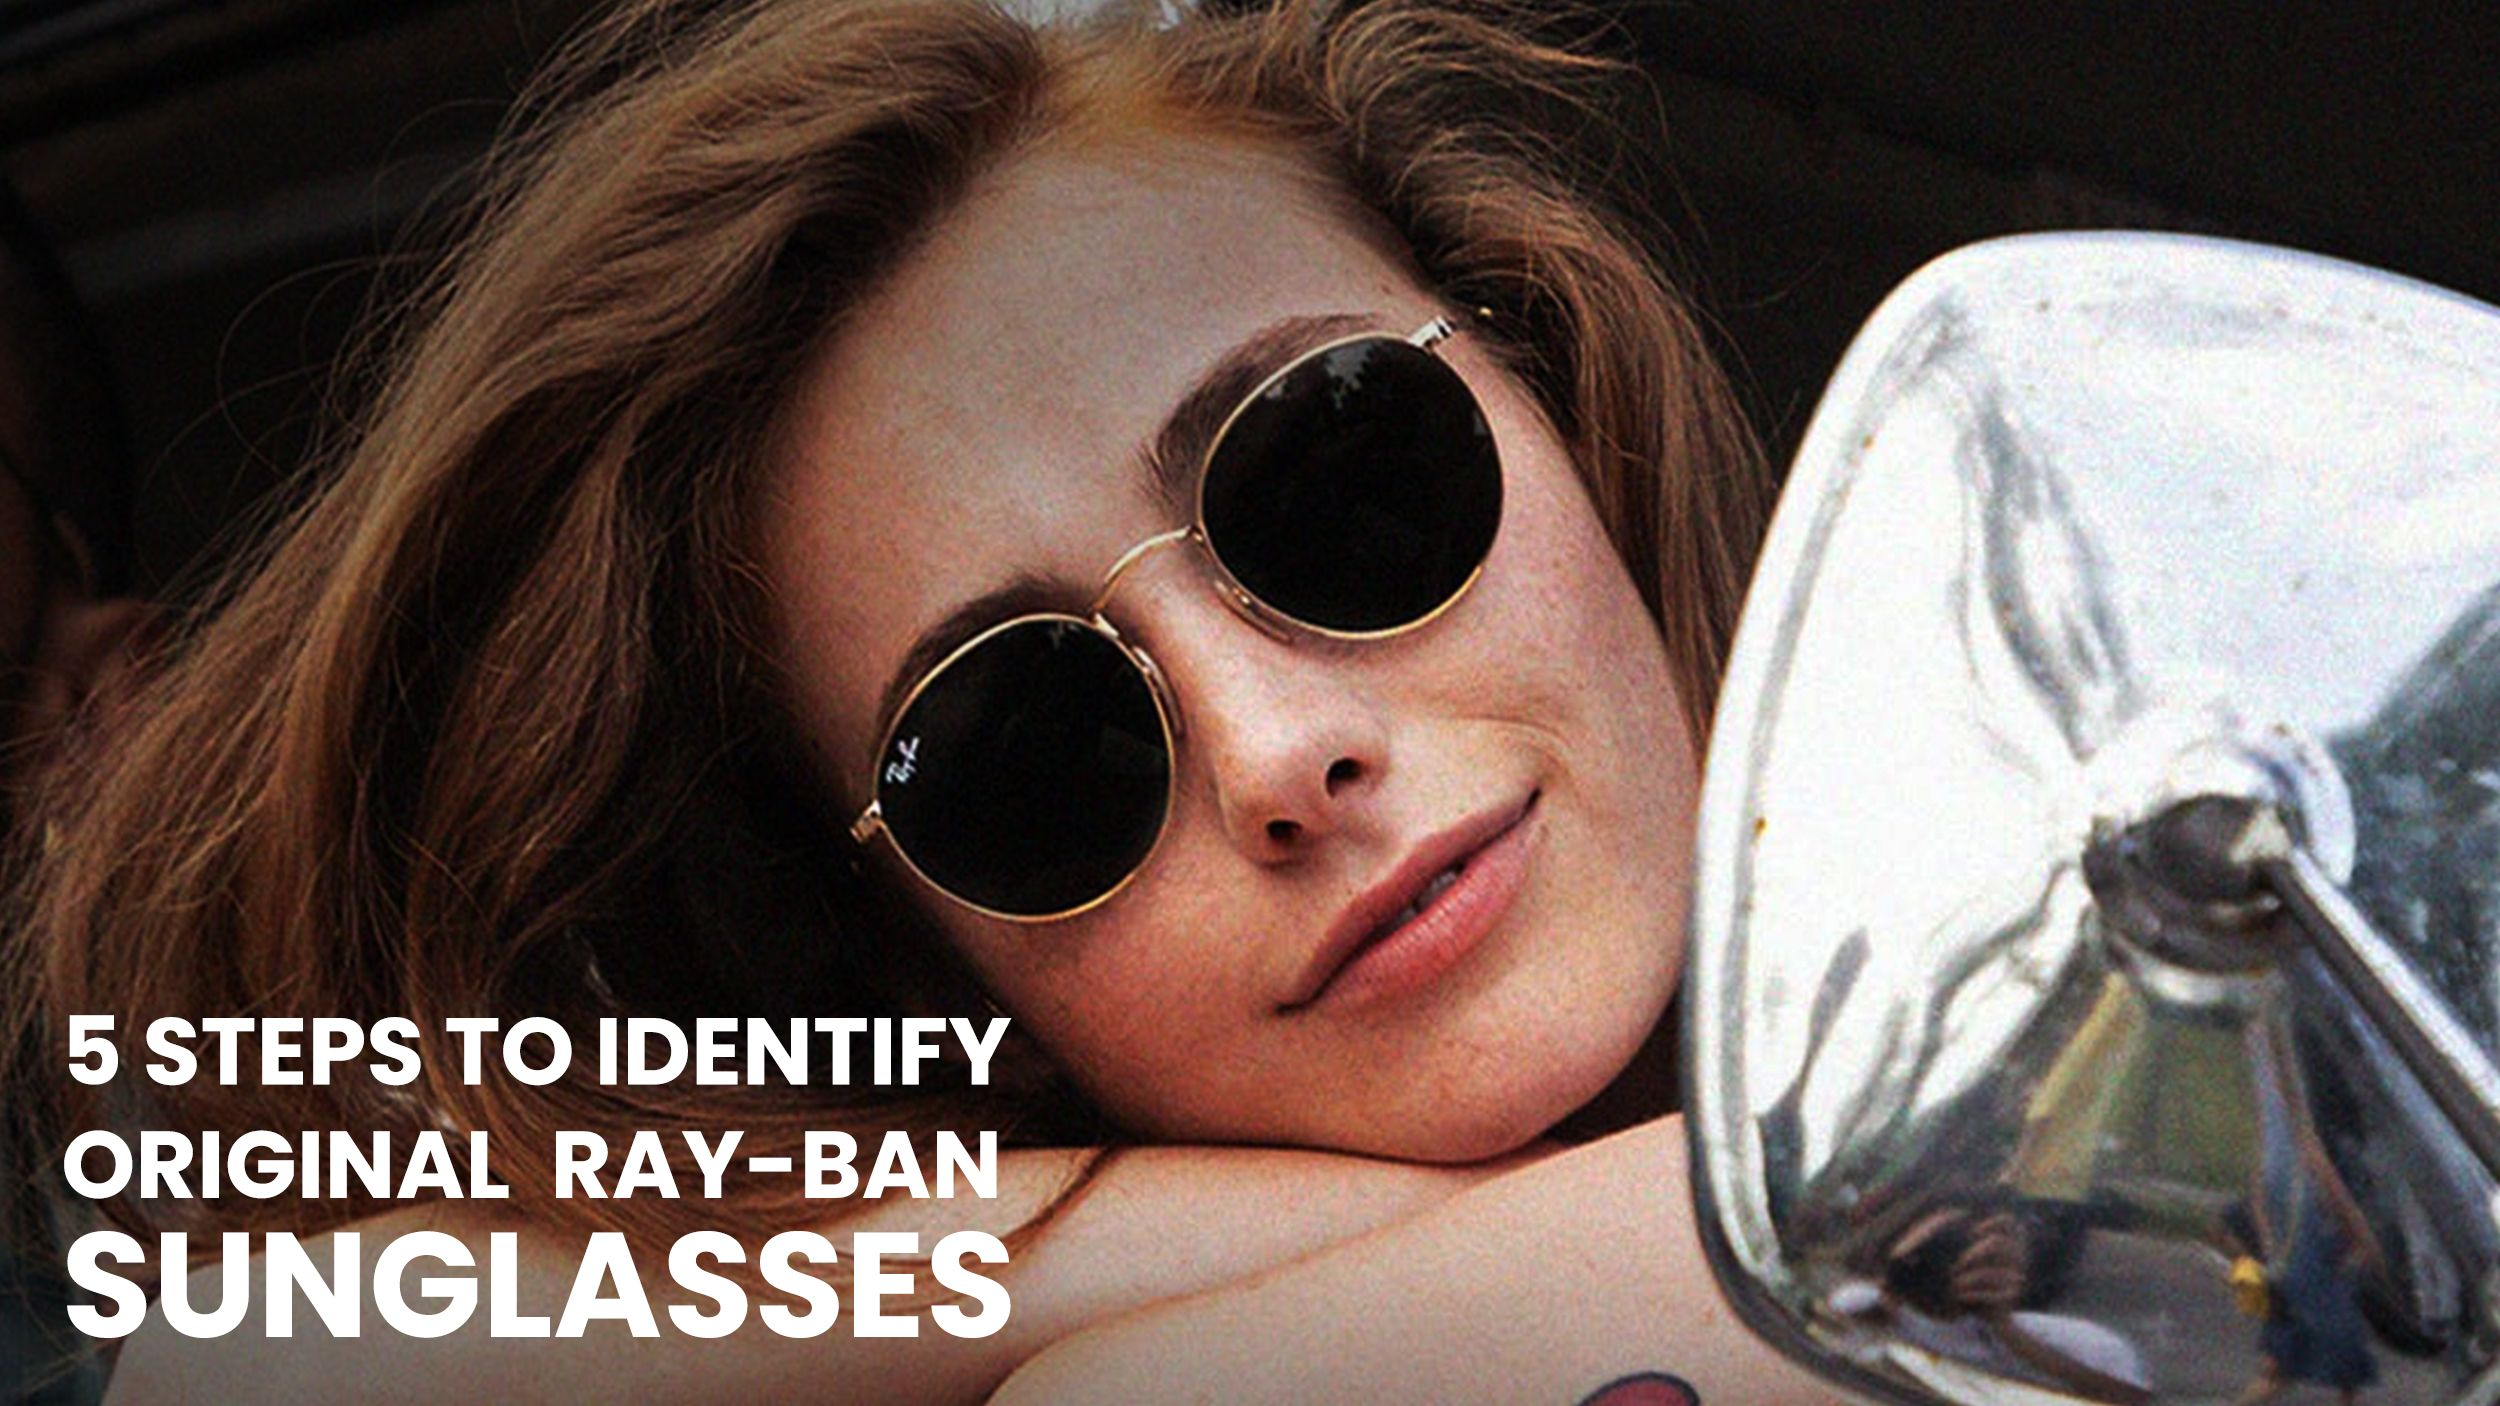 : 5 Steps to Identify Original Ray Ban Sunglasses Header